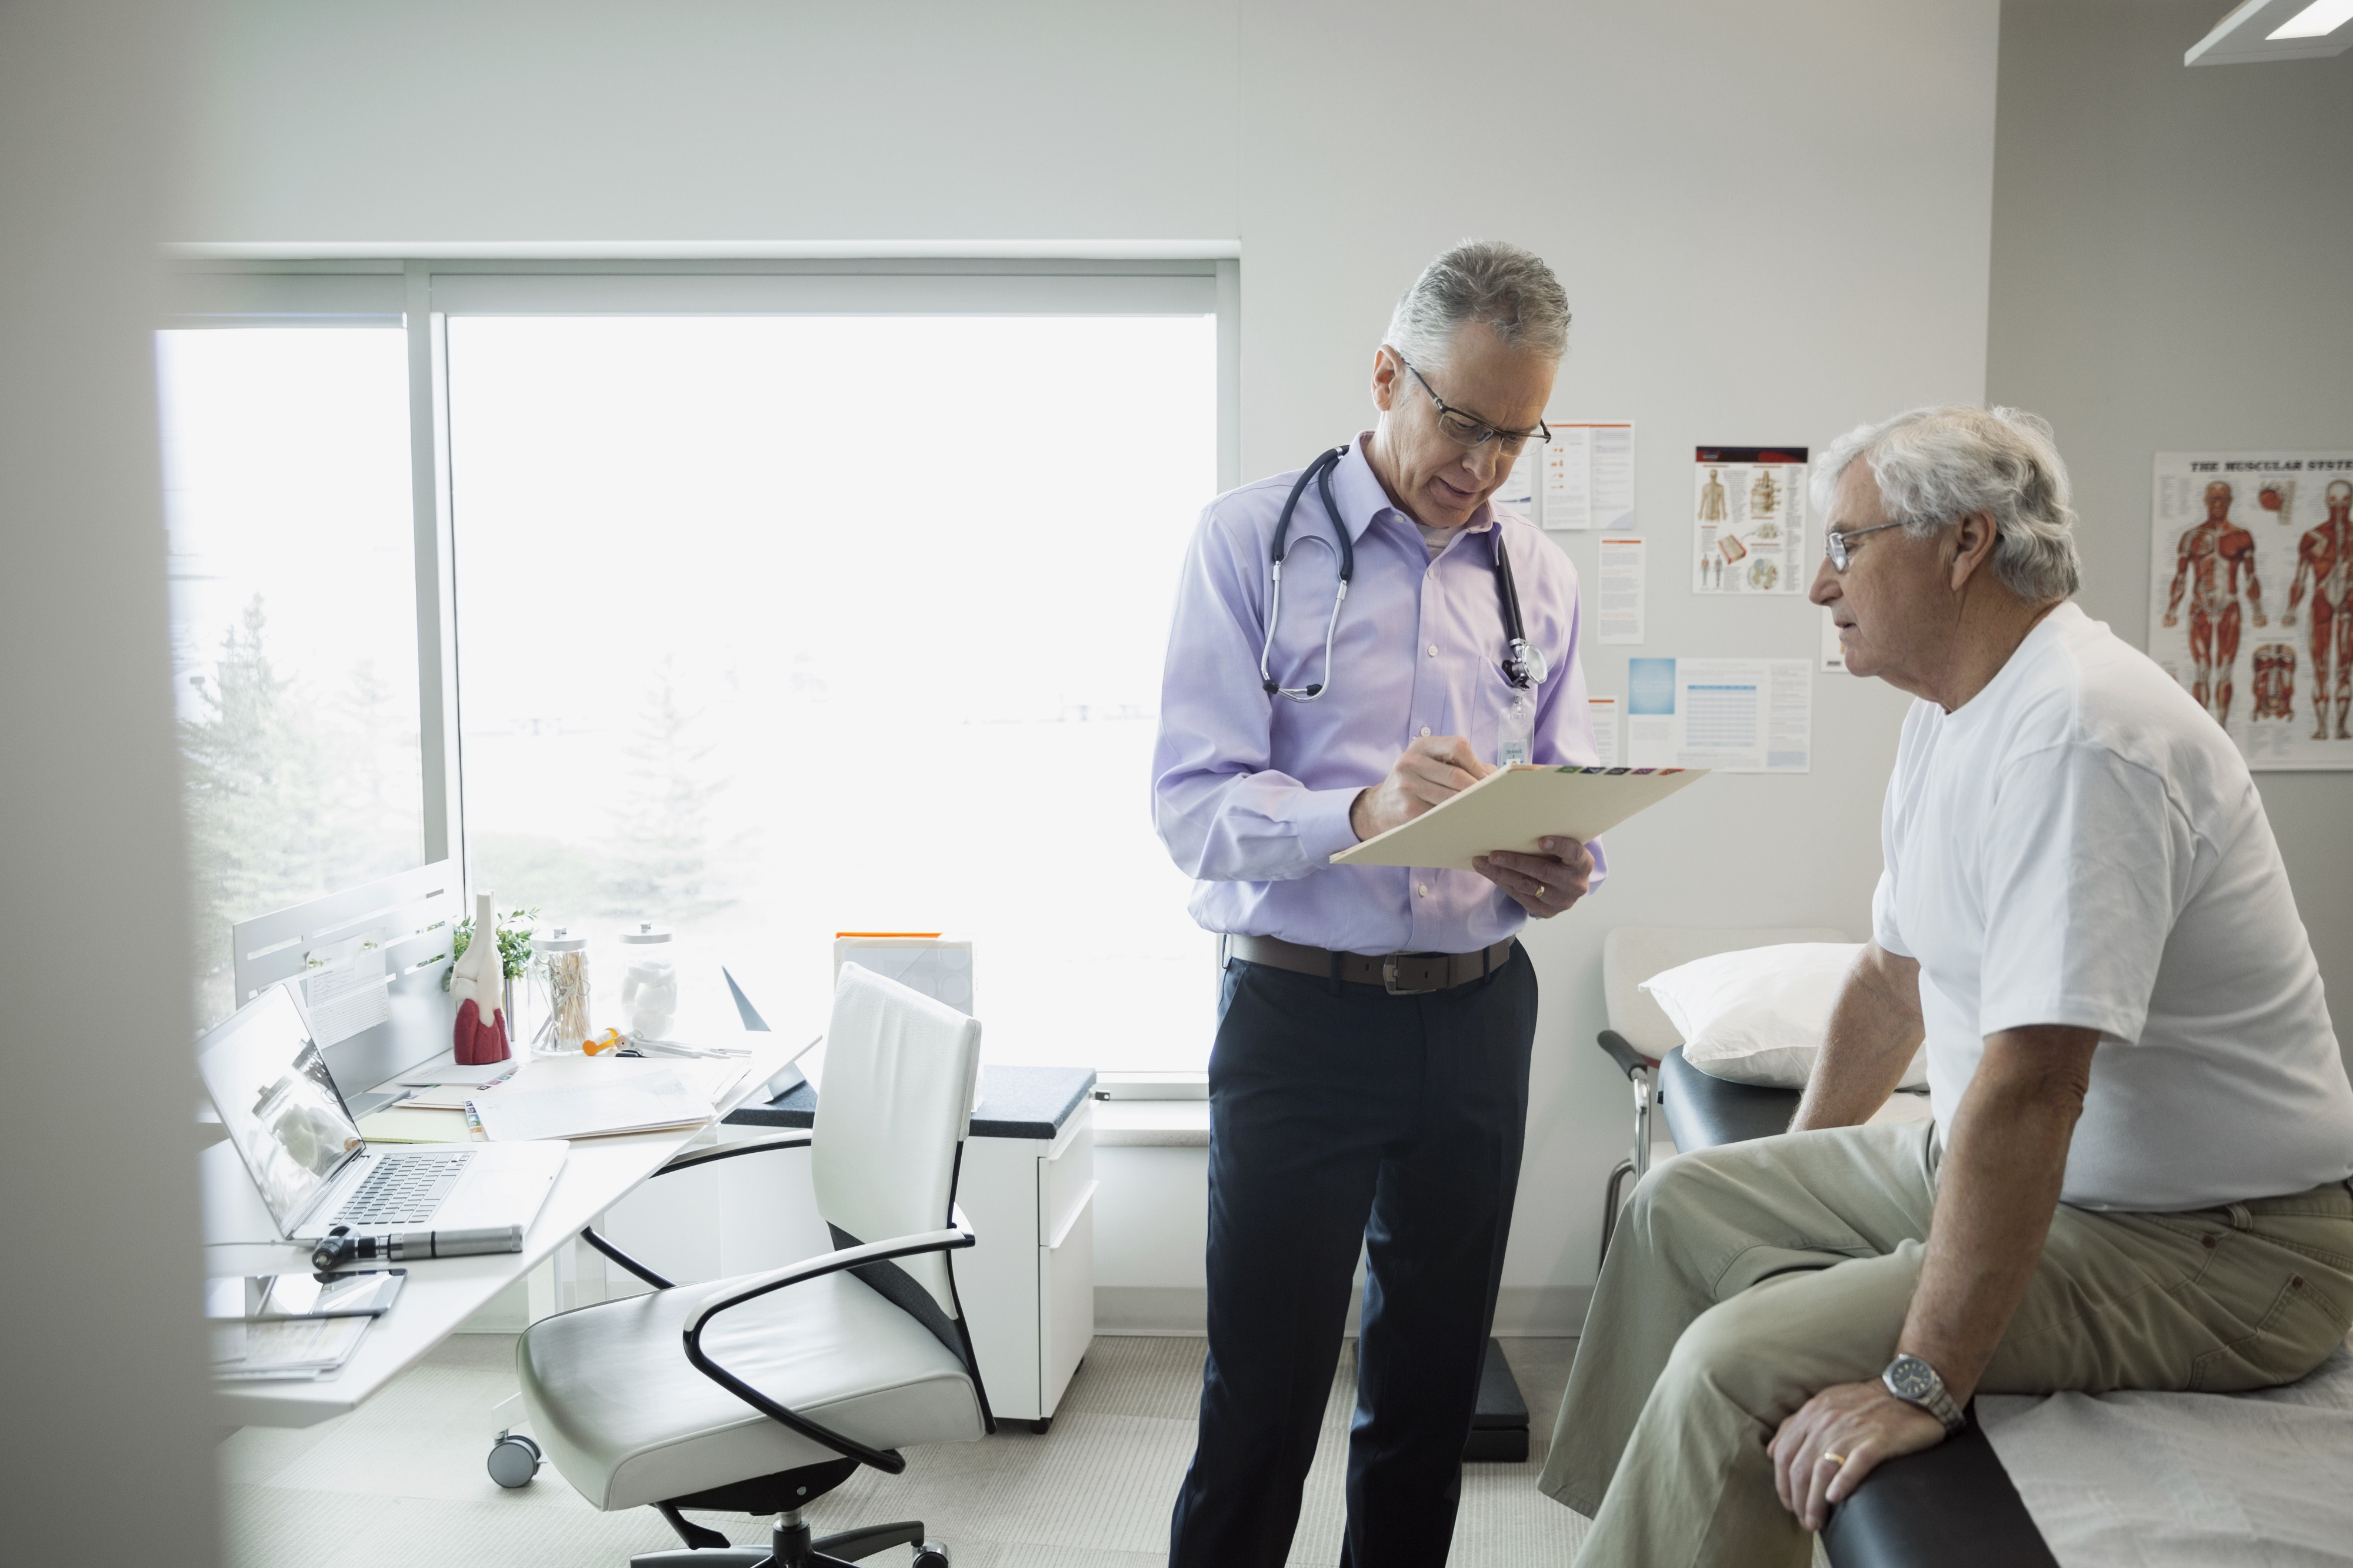 A doctor reviews the medical chart of a senior male patient.